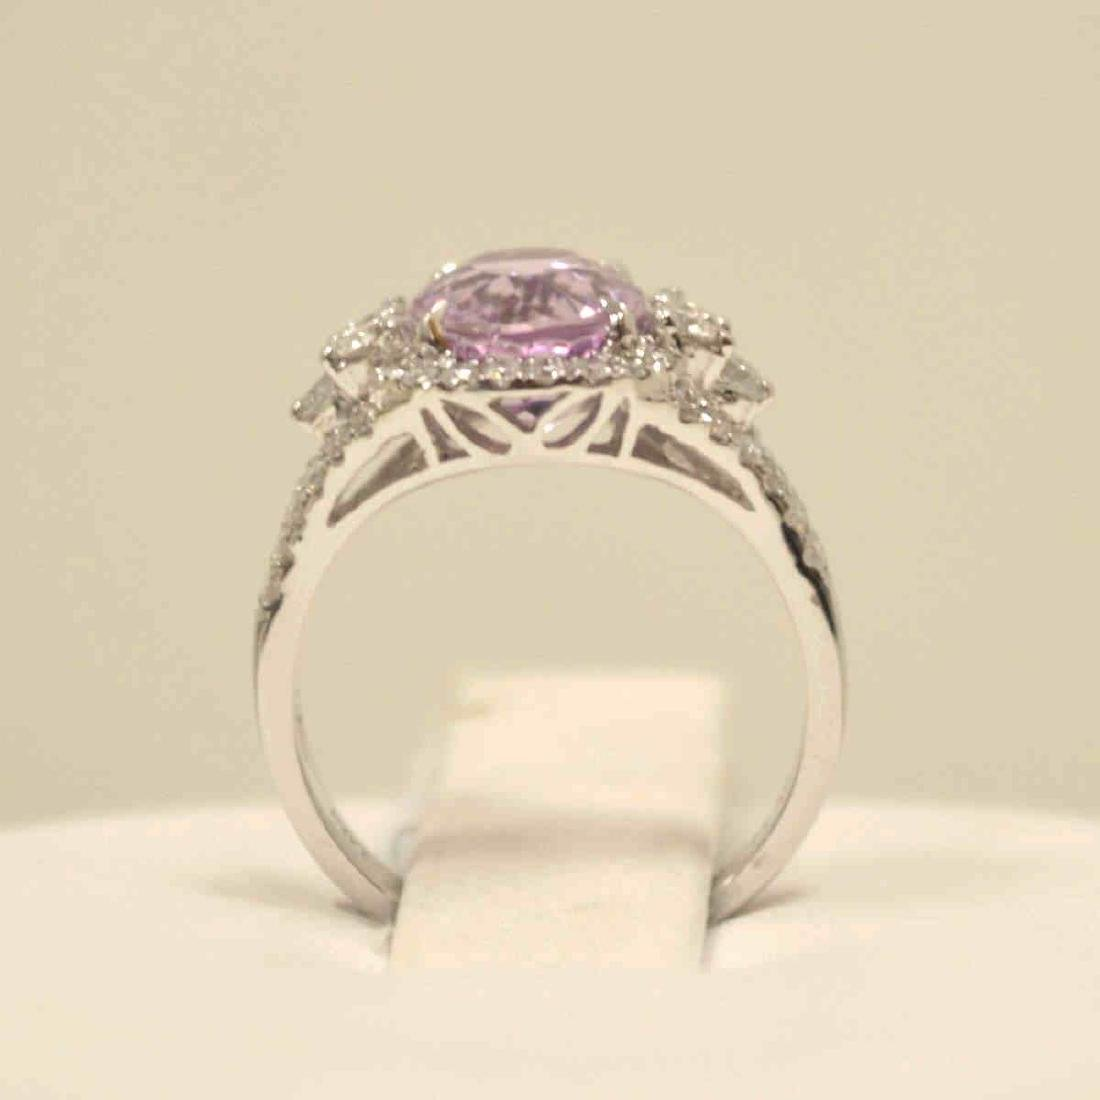 14kt white gold kunzite and diamond ring - 3